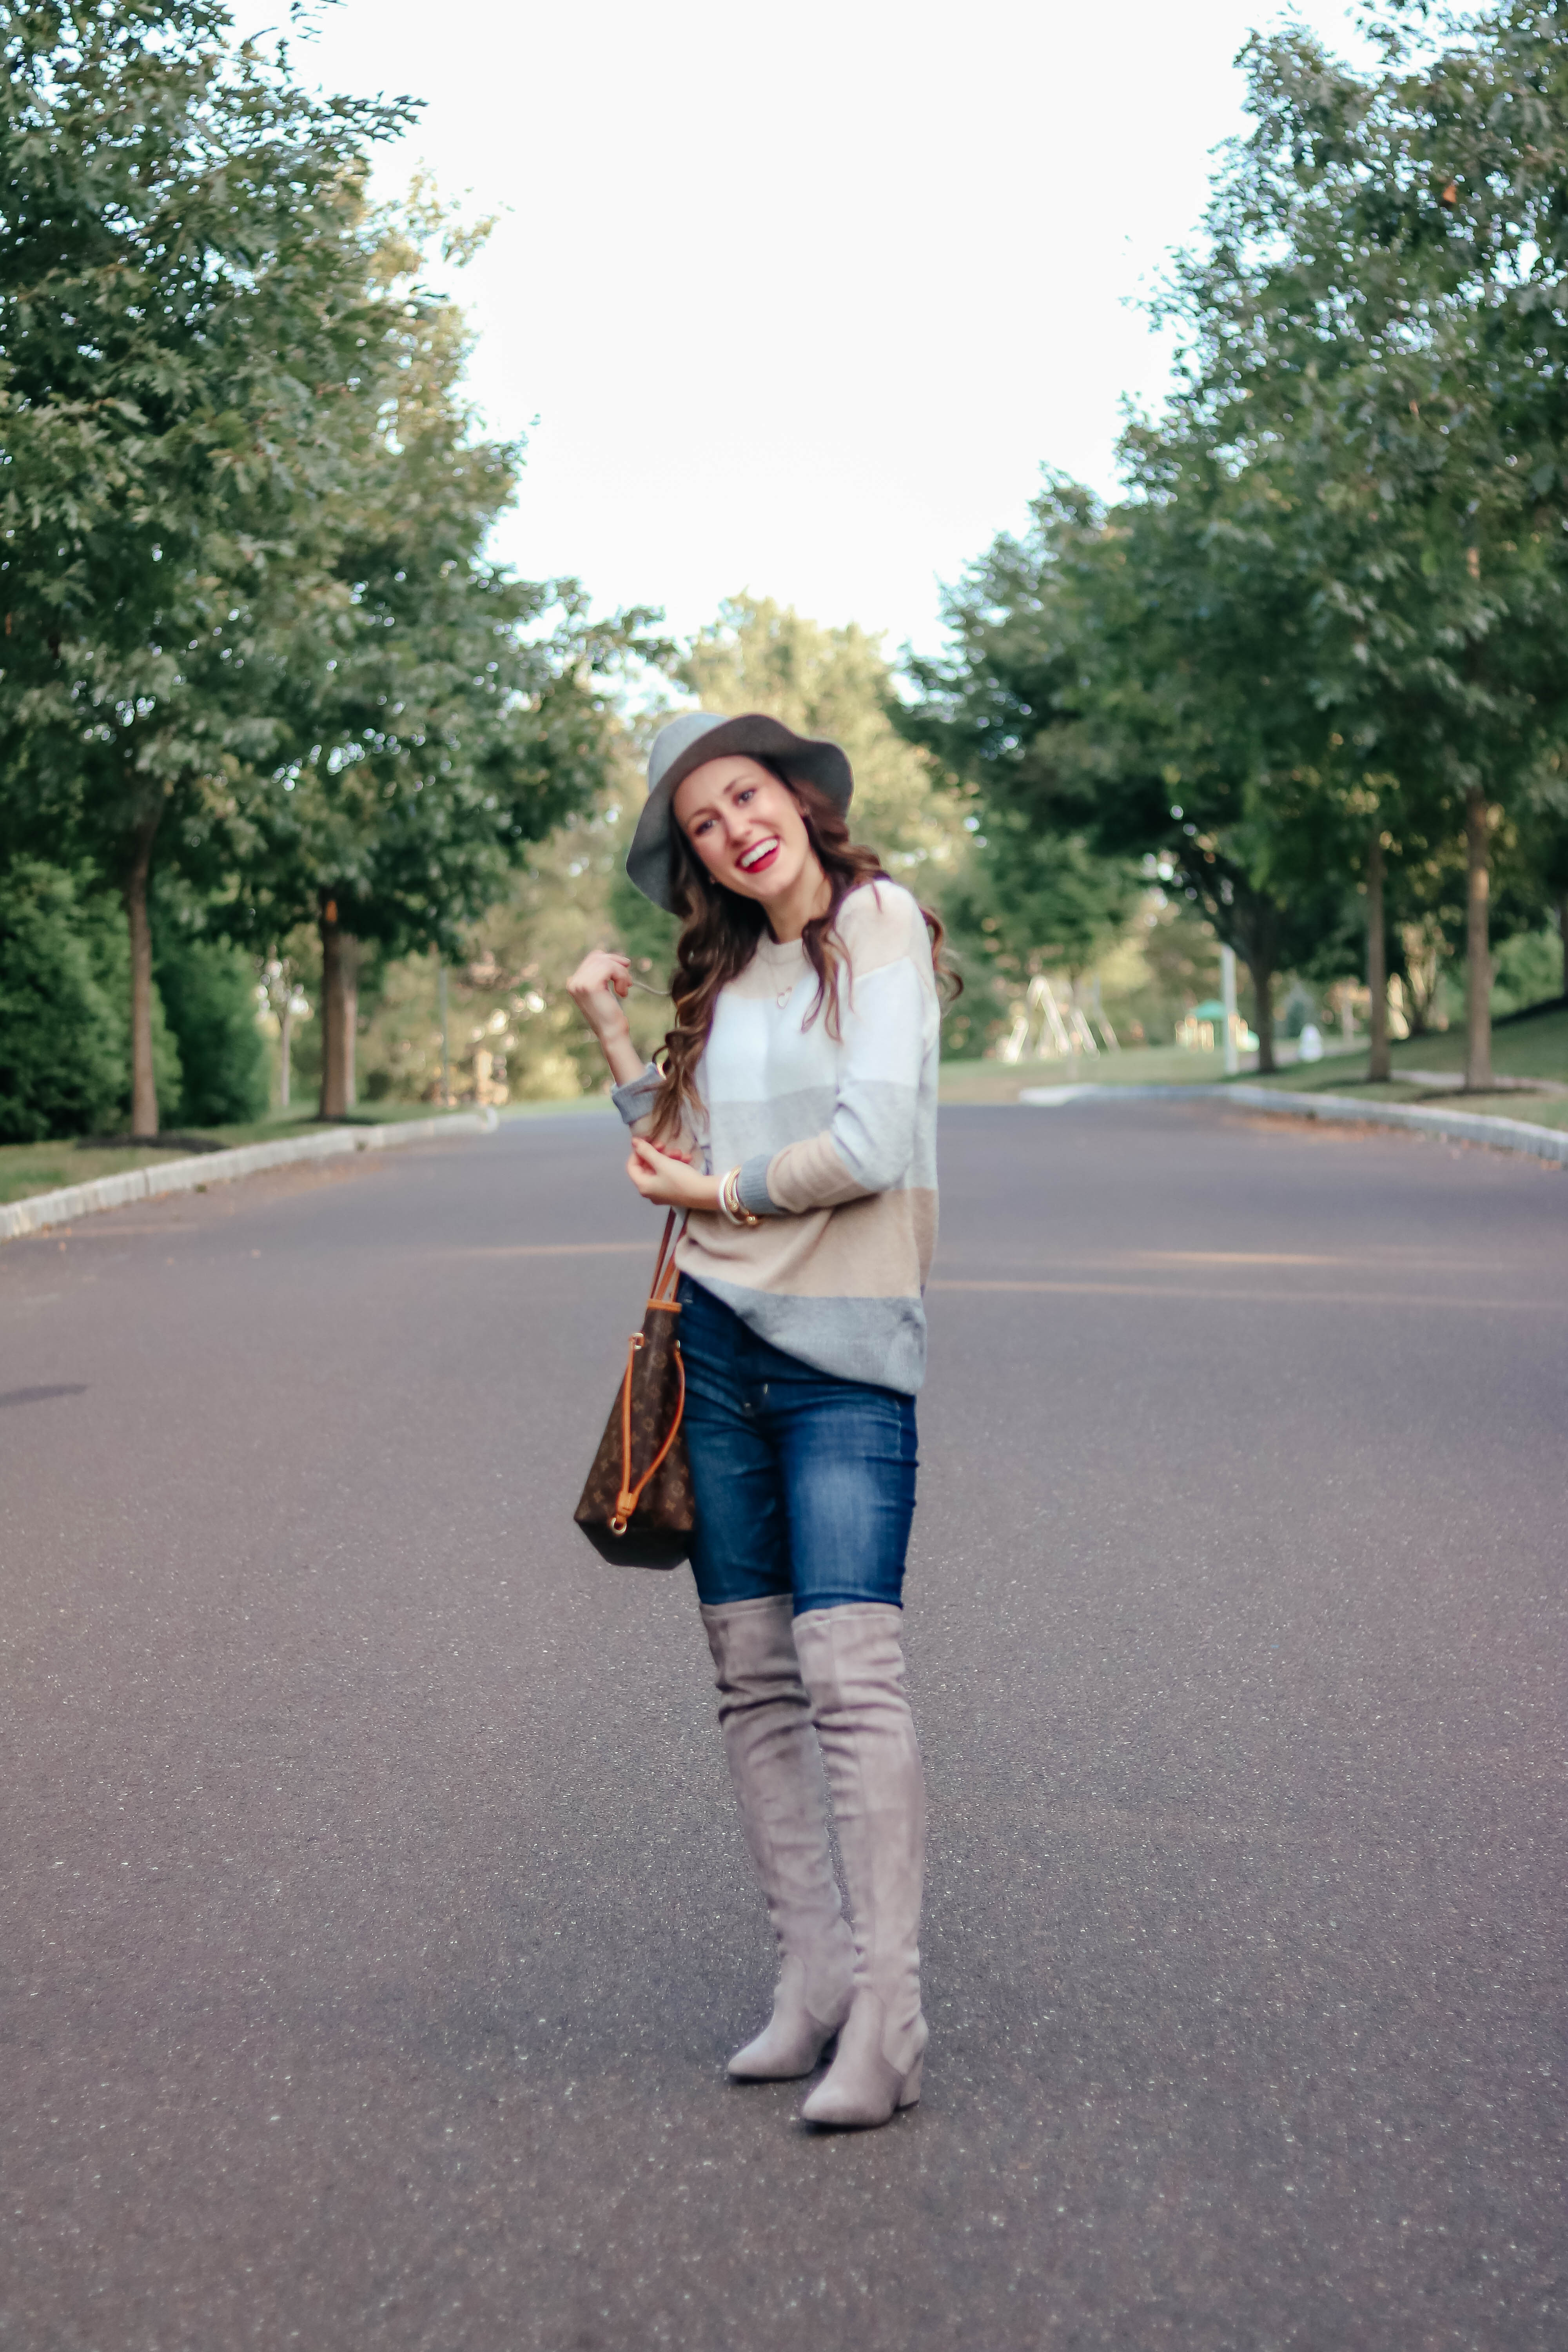 The $12 Sweater that feels like Cashmere - This $12 striped pullover sweater is INCREDIBLE and WILL sell out, so treat yo'self ASAP! - Easy, affordable fall fashion on Coming Up Roses